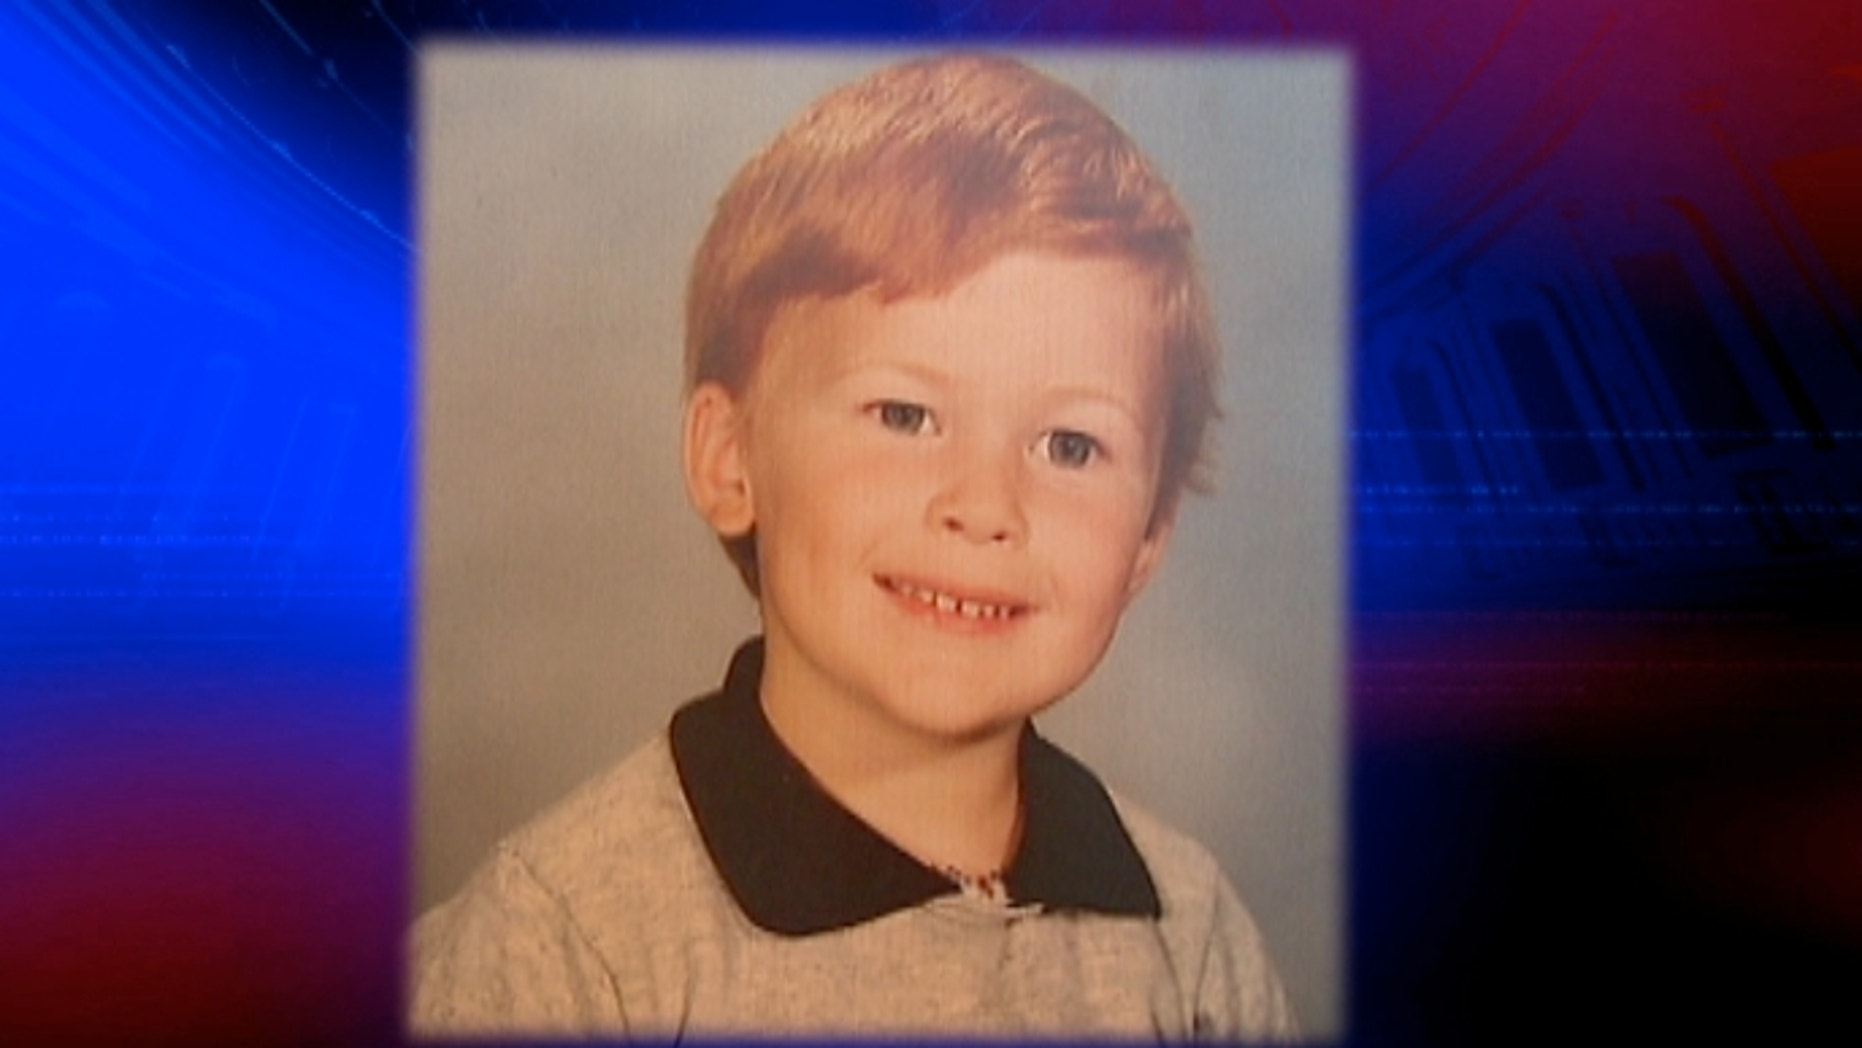 Six year old Alex Donley died after eating a contaminated hamburger in 1993. (Donley Family Photo)